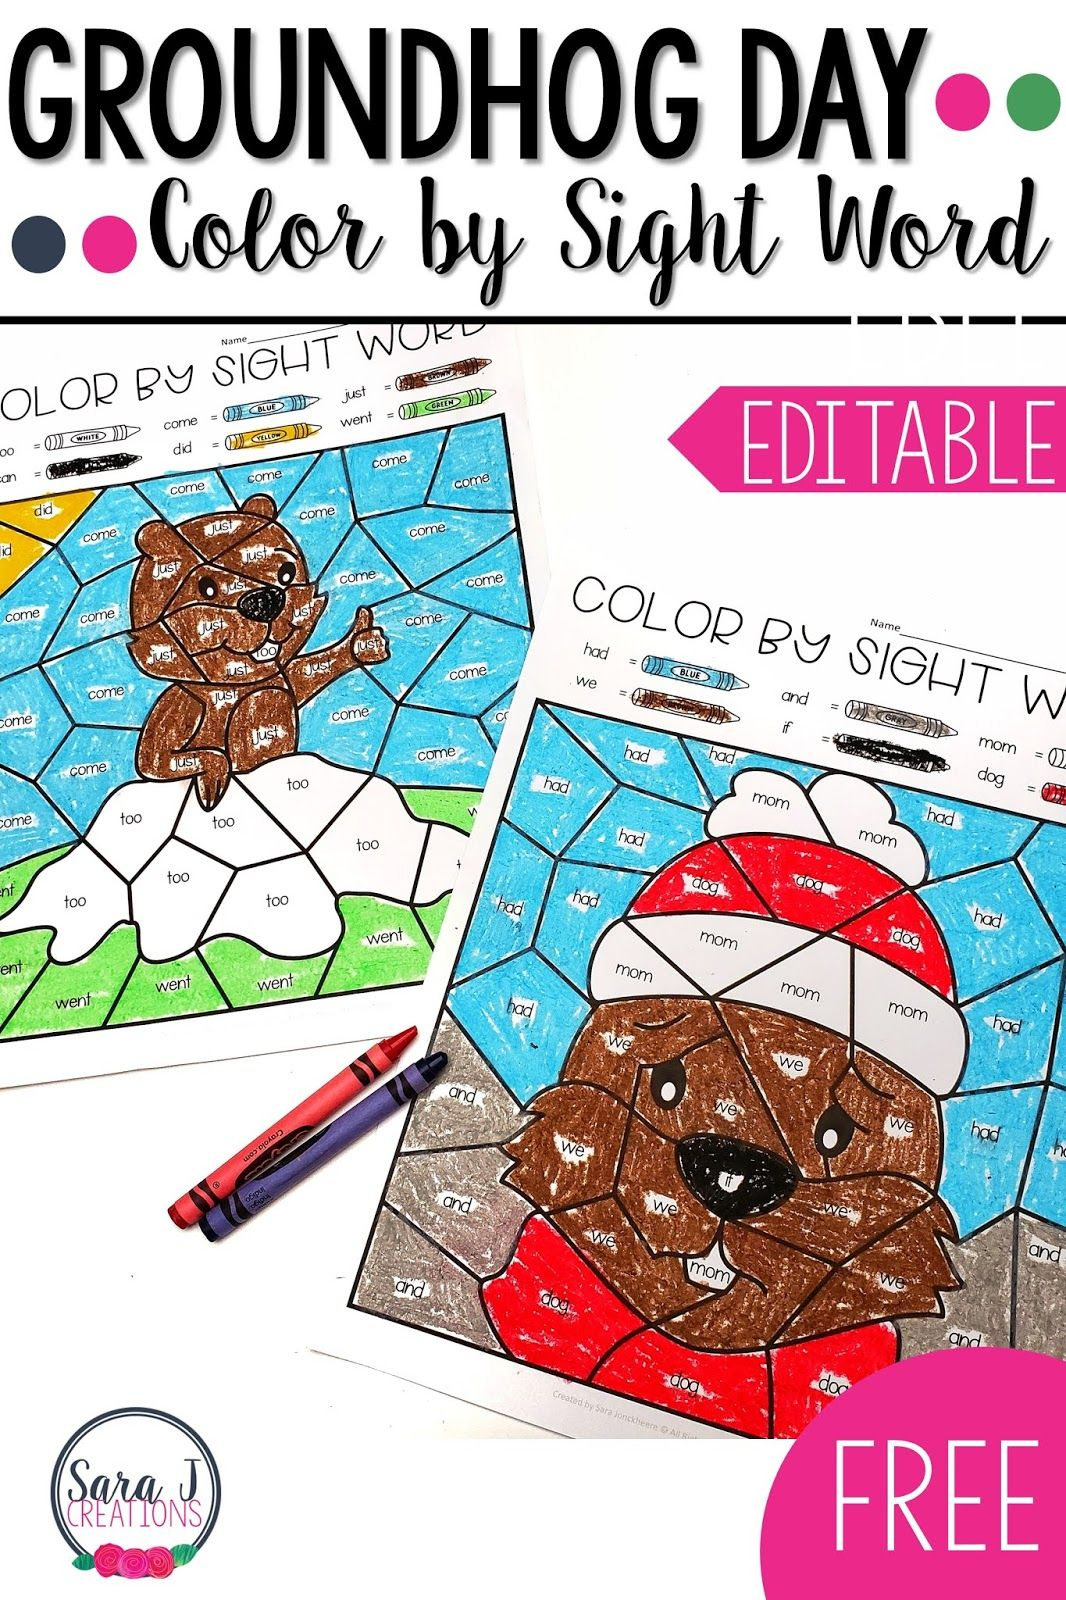 Free Groundhog Day Color By Sight Word Activities